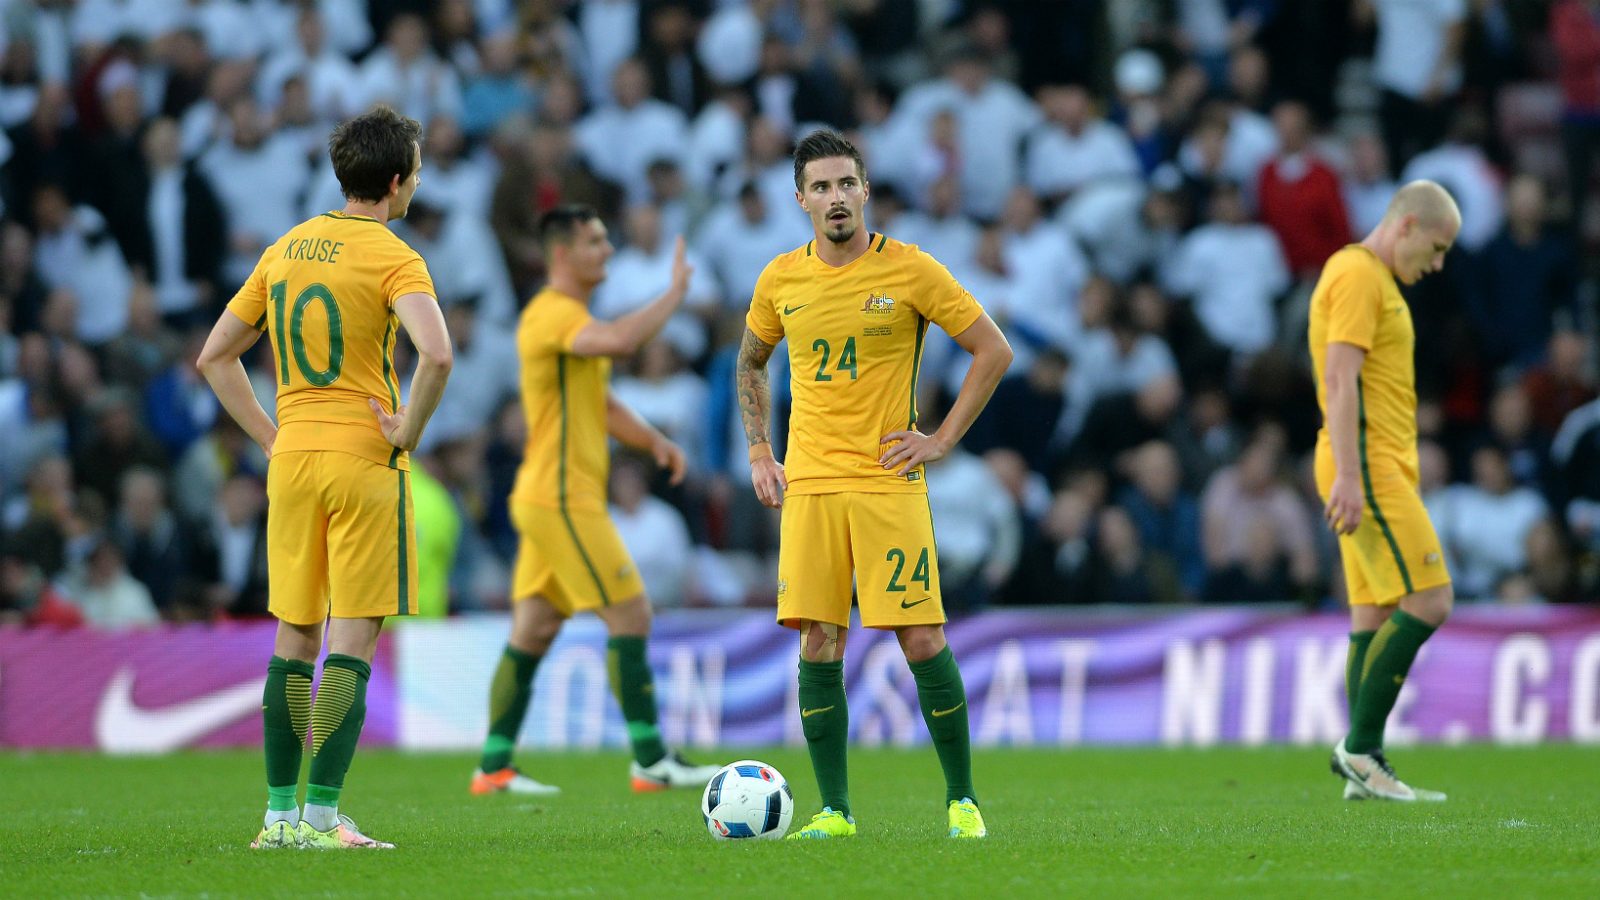 Jamie Maclaren, the tactically astute yet surprising final selection for the Socceroos